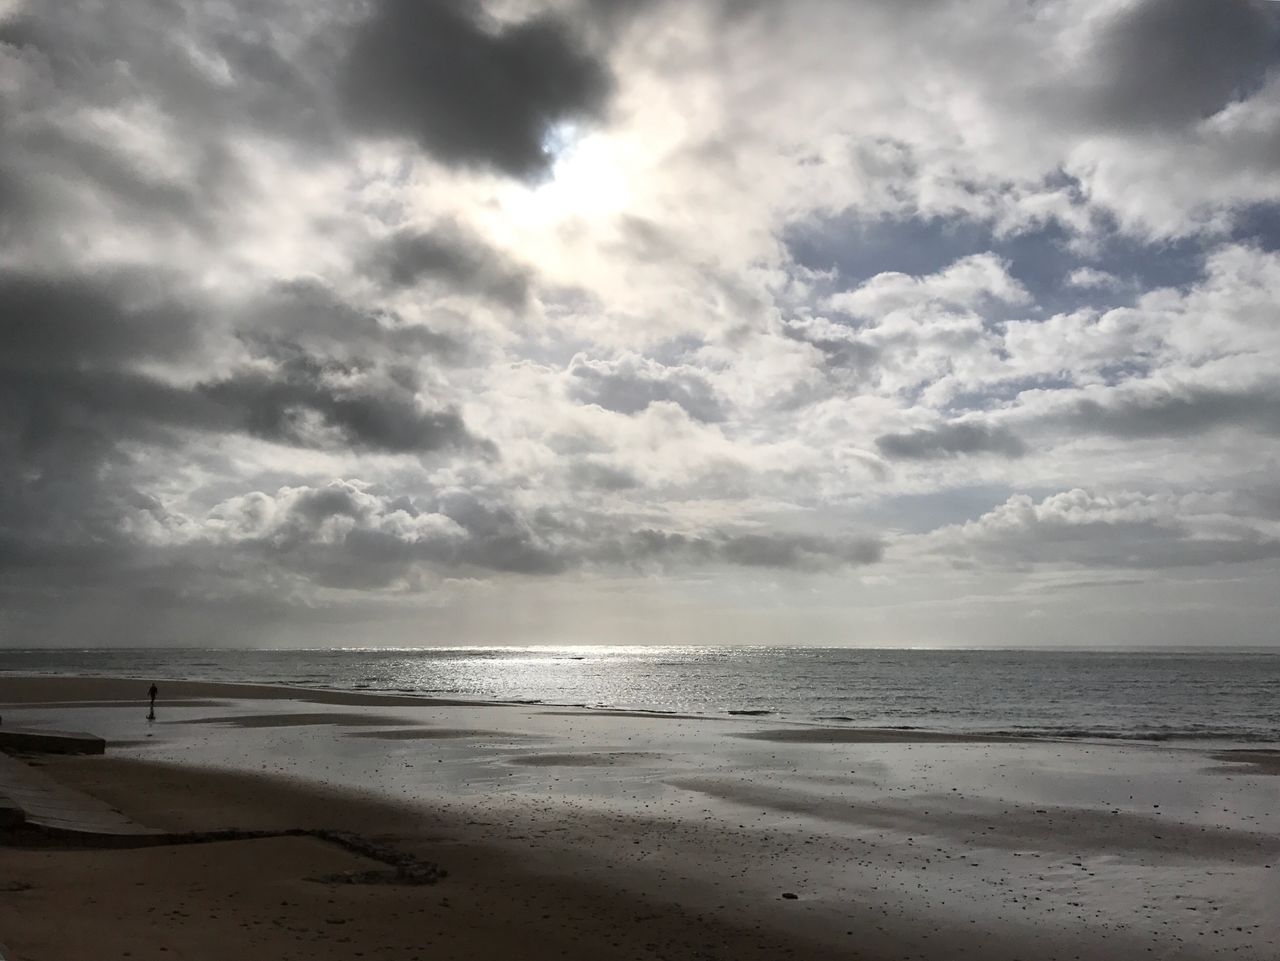 Sea Beach Horizon Over Water Water Sky Nature Sand Cloud - Sky Beauty In Nature Scenics Wave No People Outdoors Day